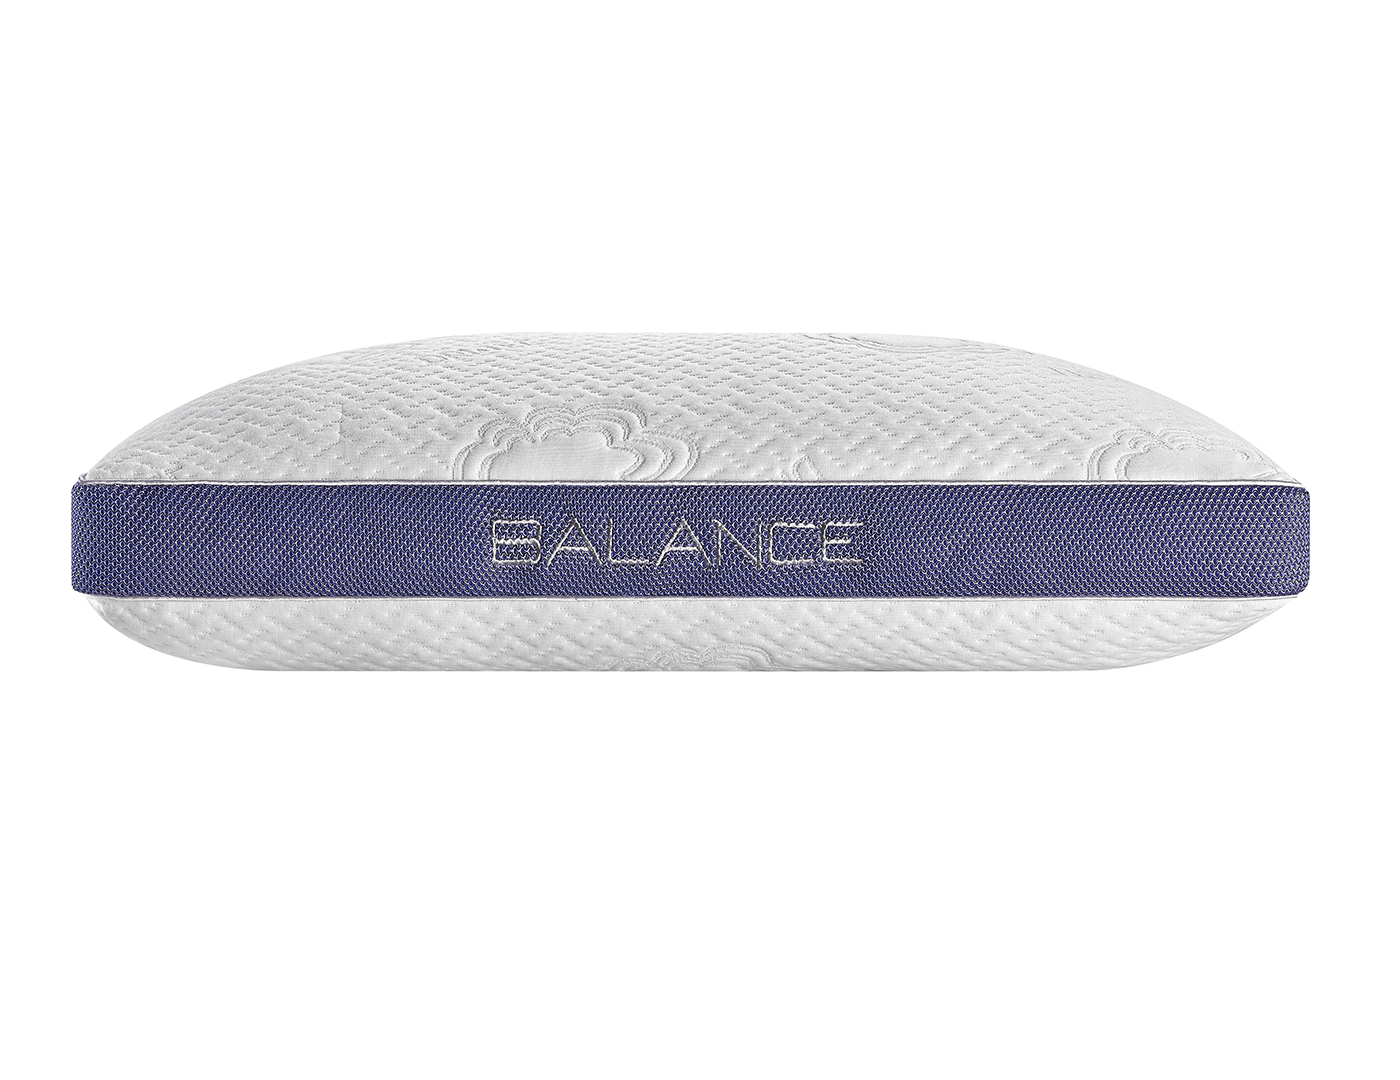 bedgear Balance 3.0 Queen Pillow